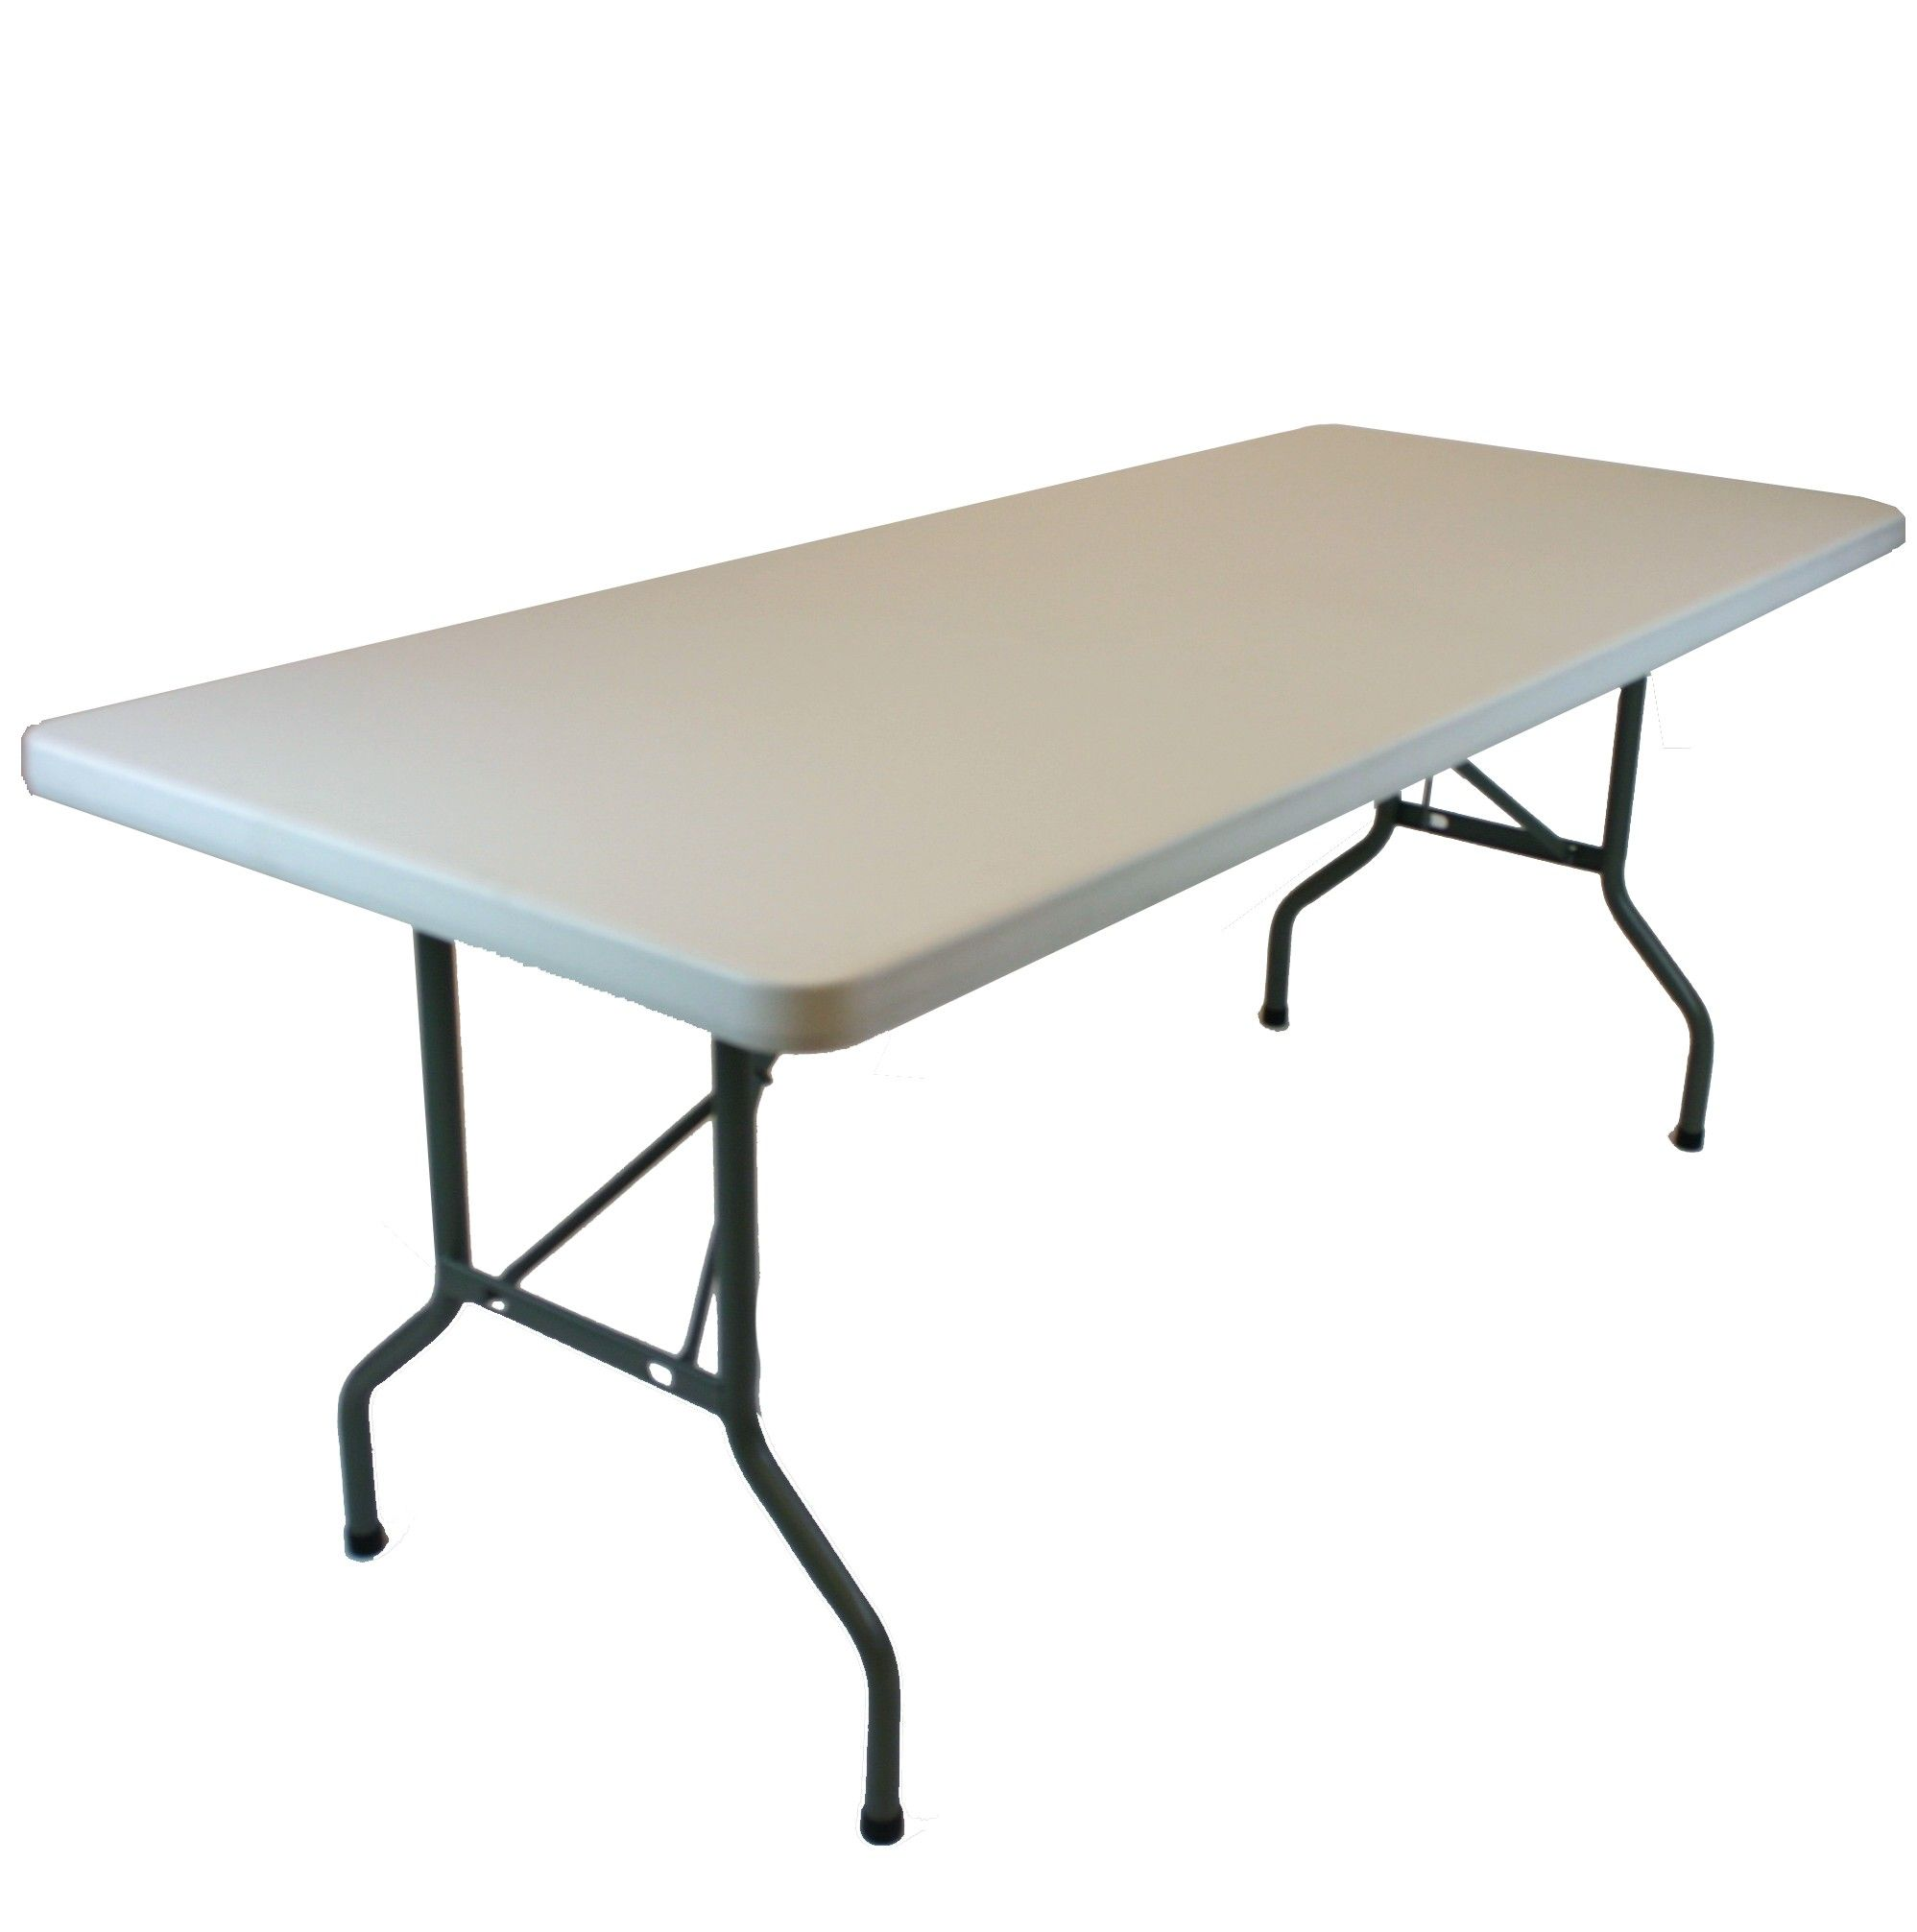 Titanpro Plastic Folding Table 6 X30 Banquet Folding Table